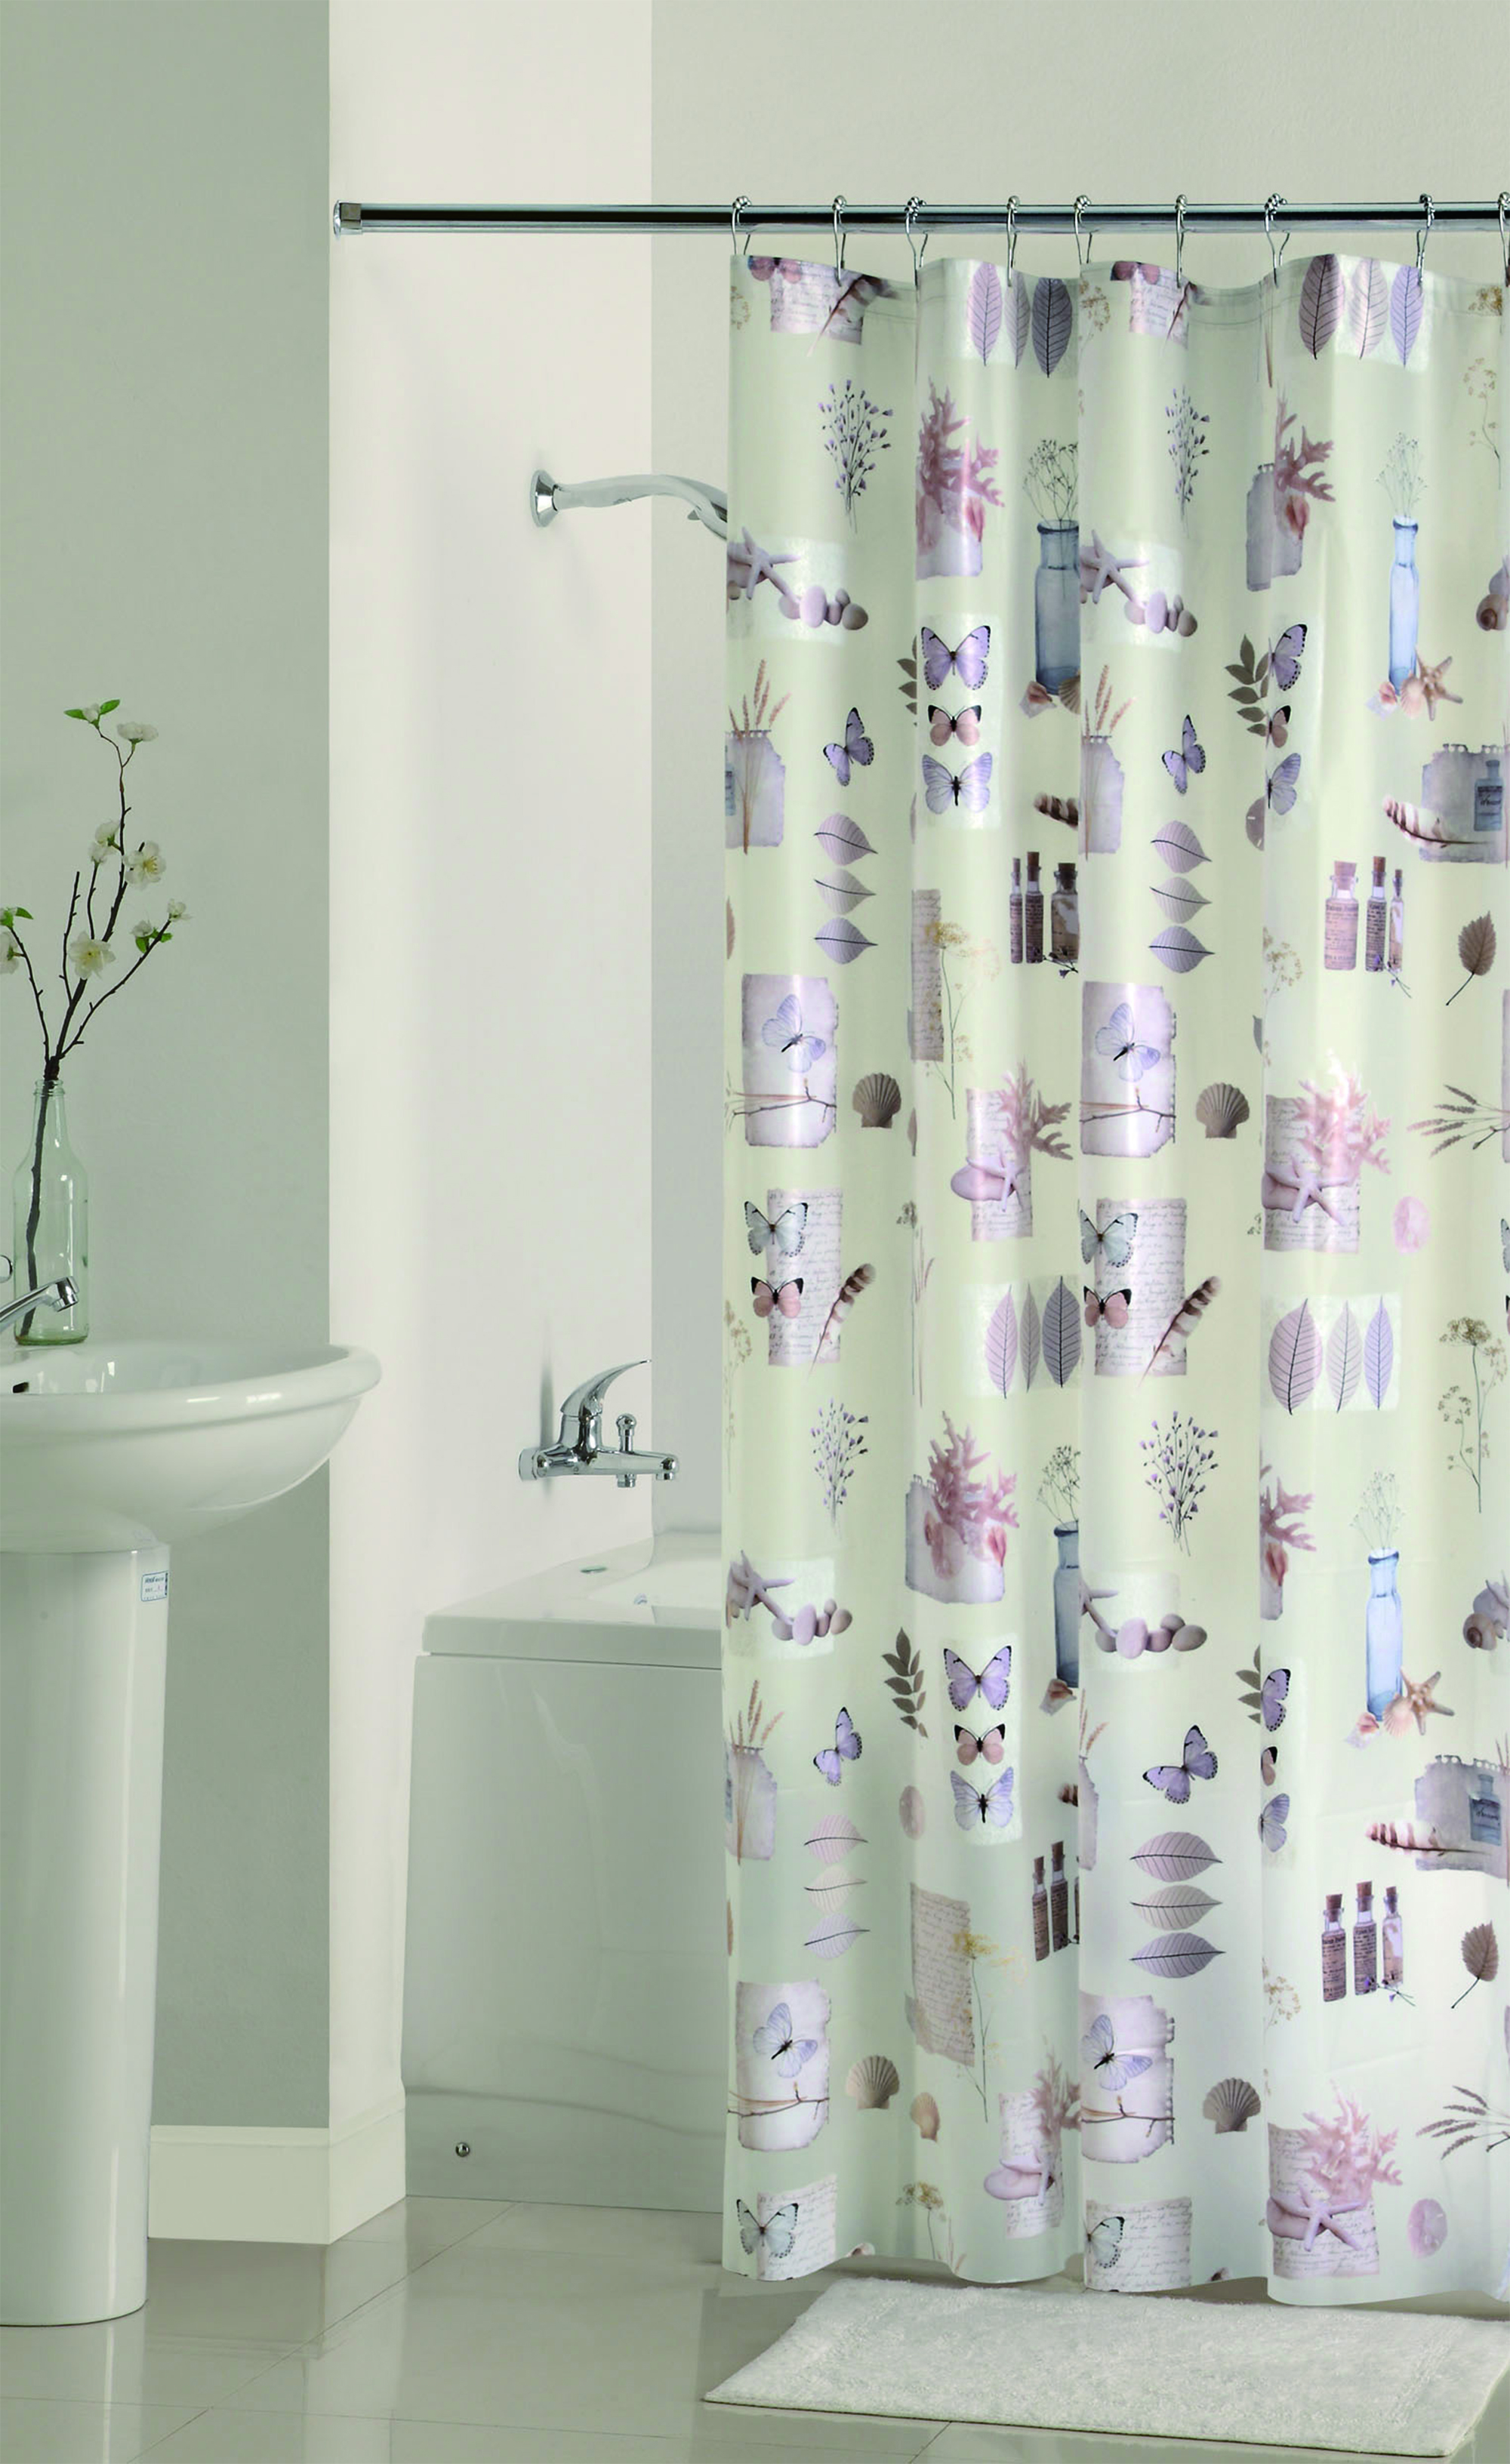 Mainstays Natures Moments Peva Shower Curtain, 70